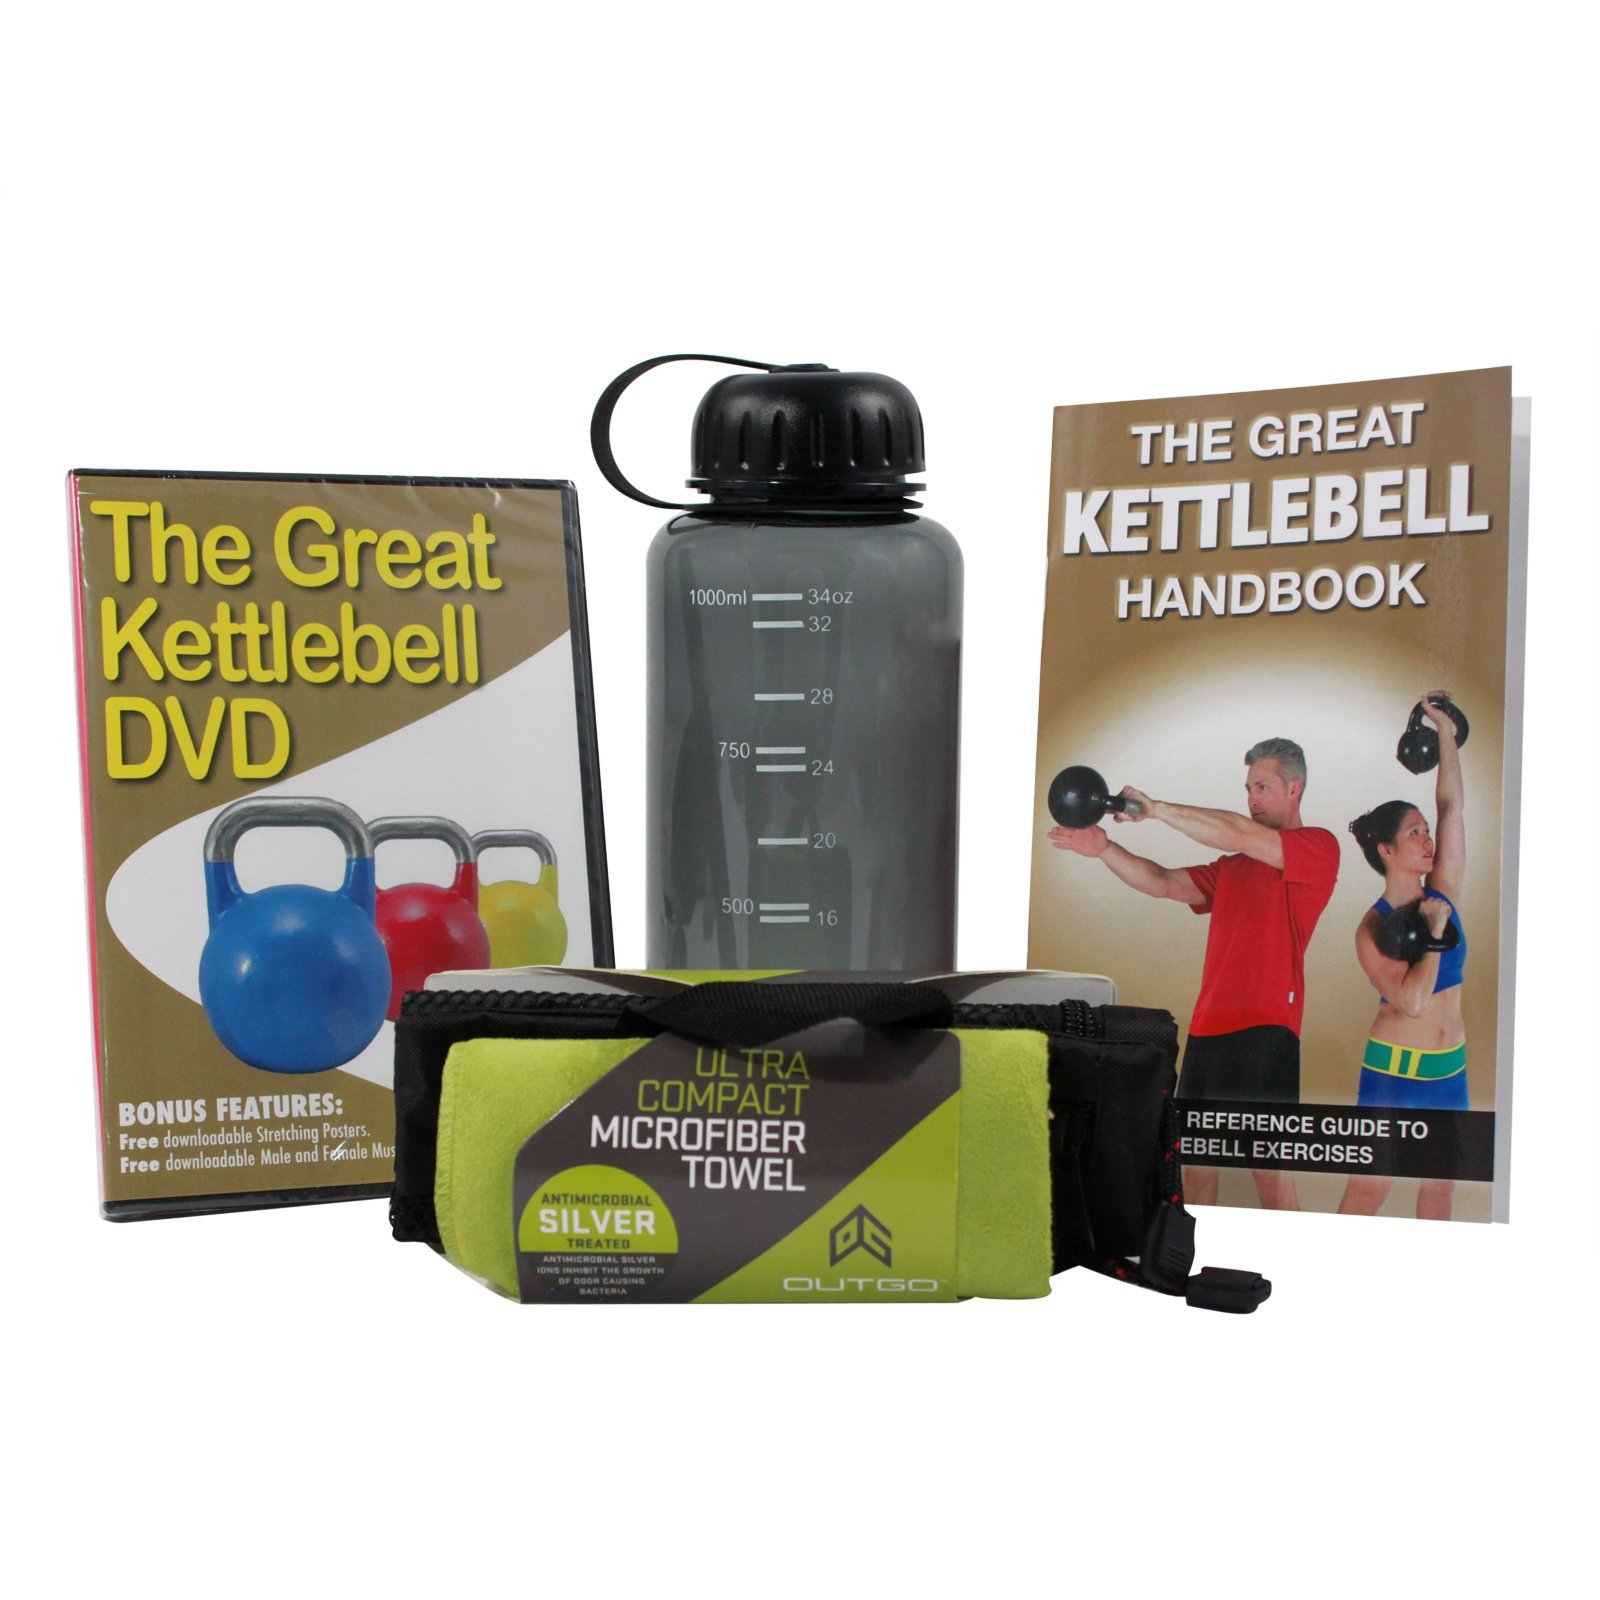 Productive Fitness Kettlebell Exercises DVD Handbook Towel and Water Bottle Set